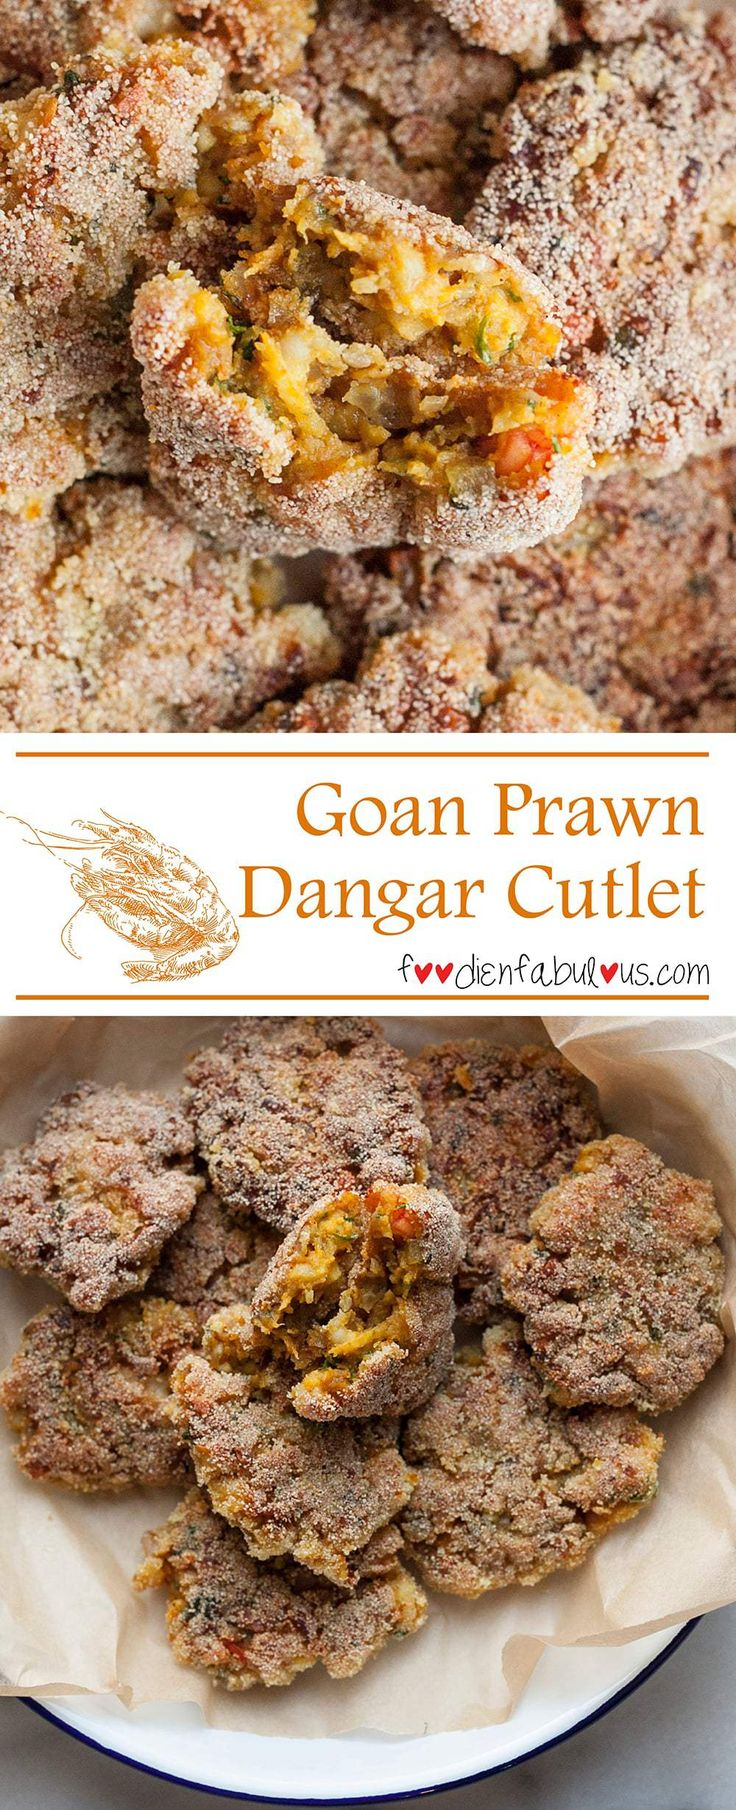 Easy recipe for Goan Prawn Dangar Cutlets using fresh prawns mixed with spices and pan-fried with a semolina coating. Perfect appetizer or sandwich filling.